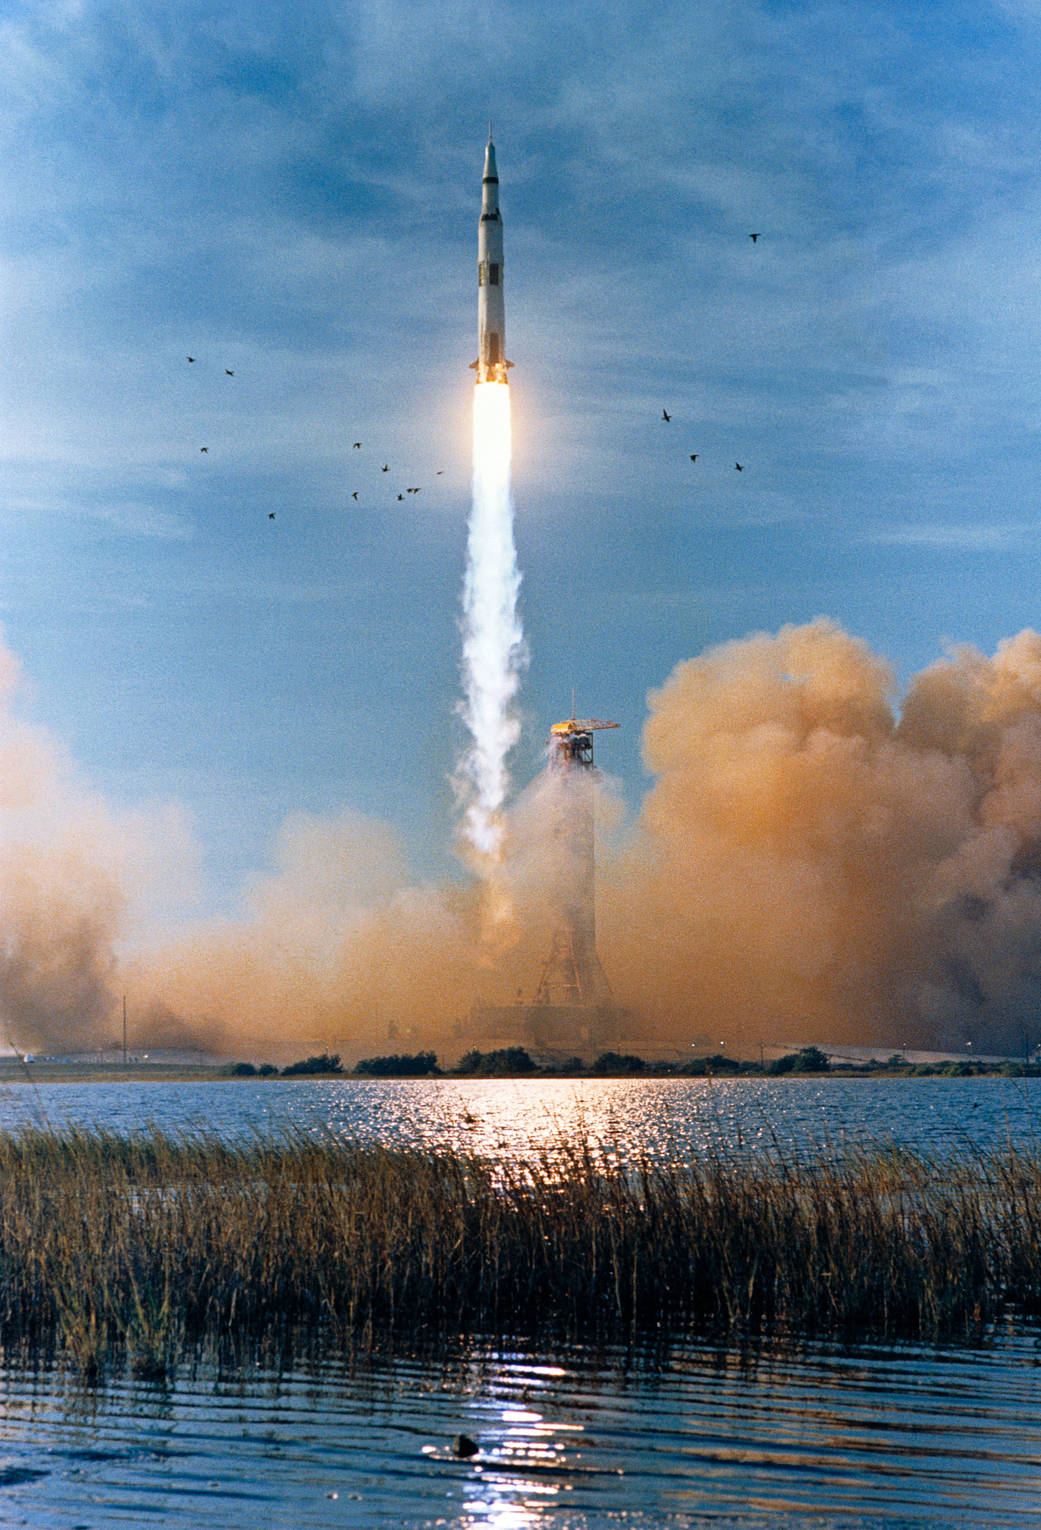 Apollo 8 launch, December 21, 1968